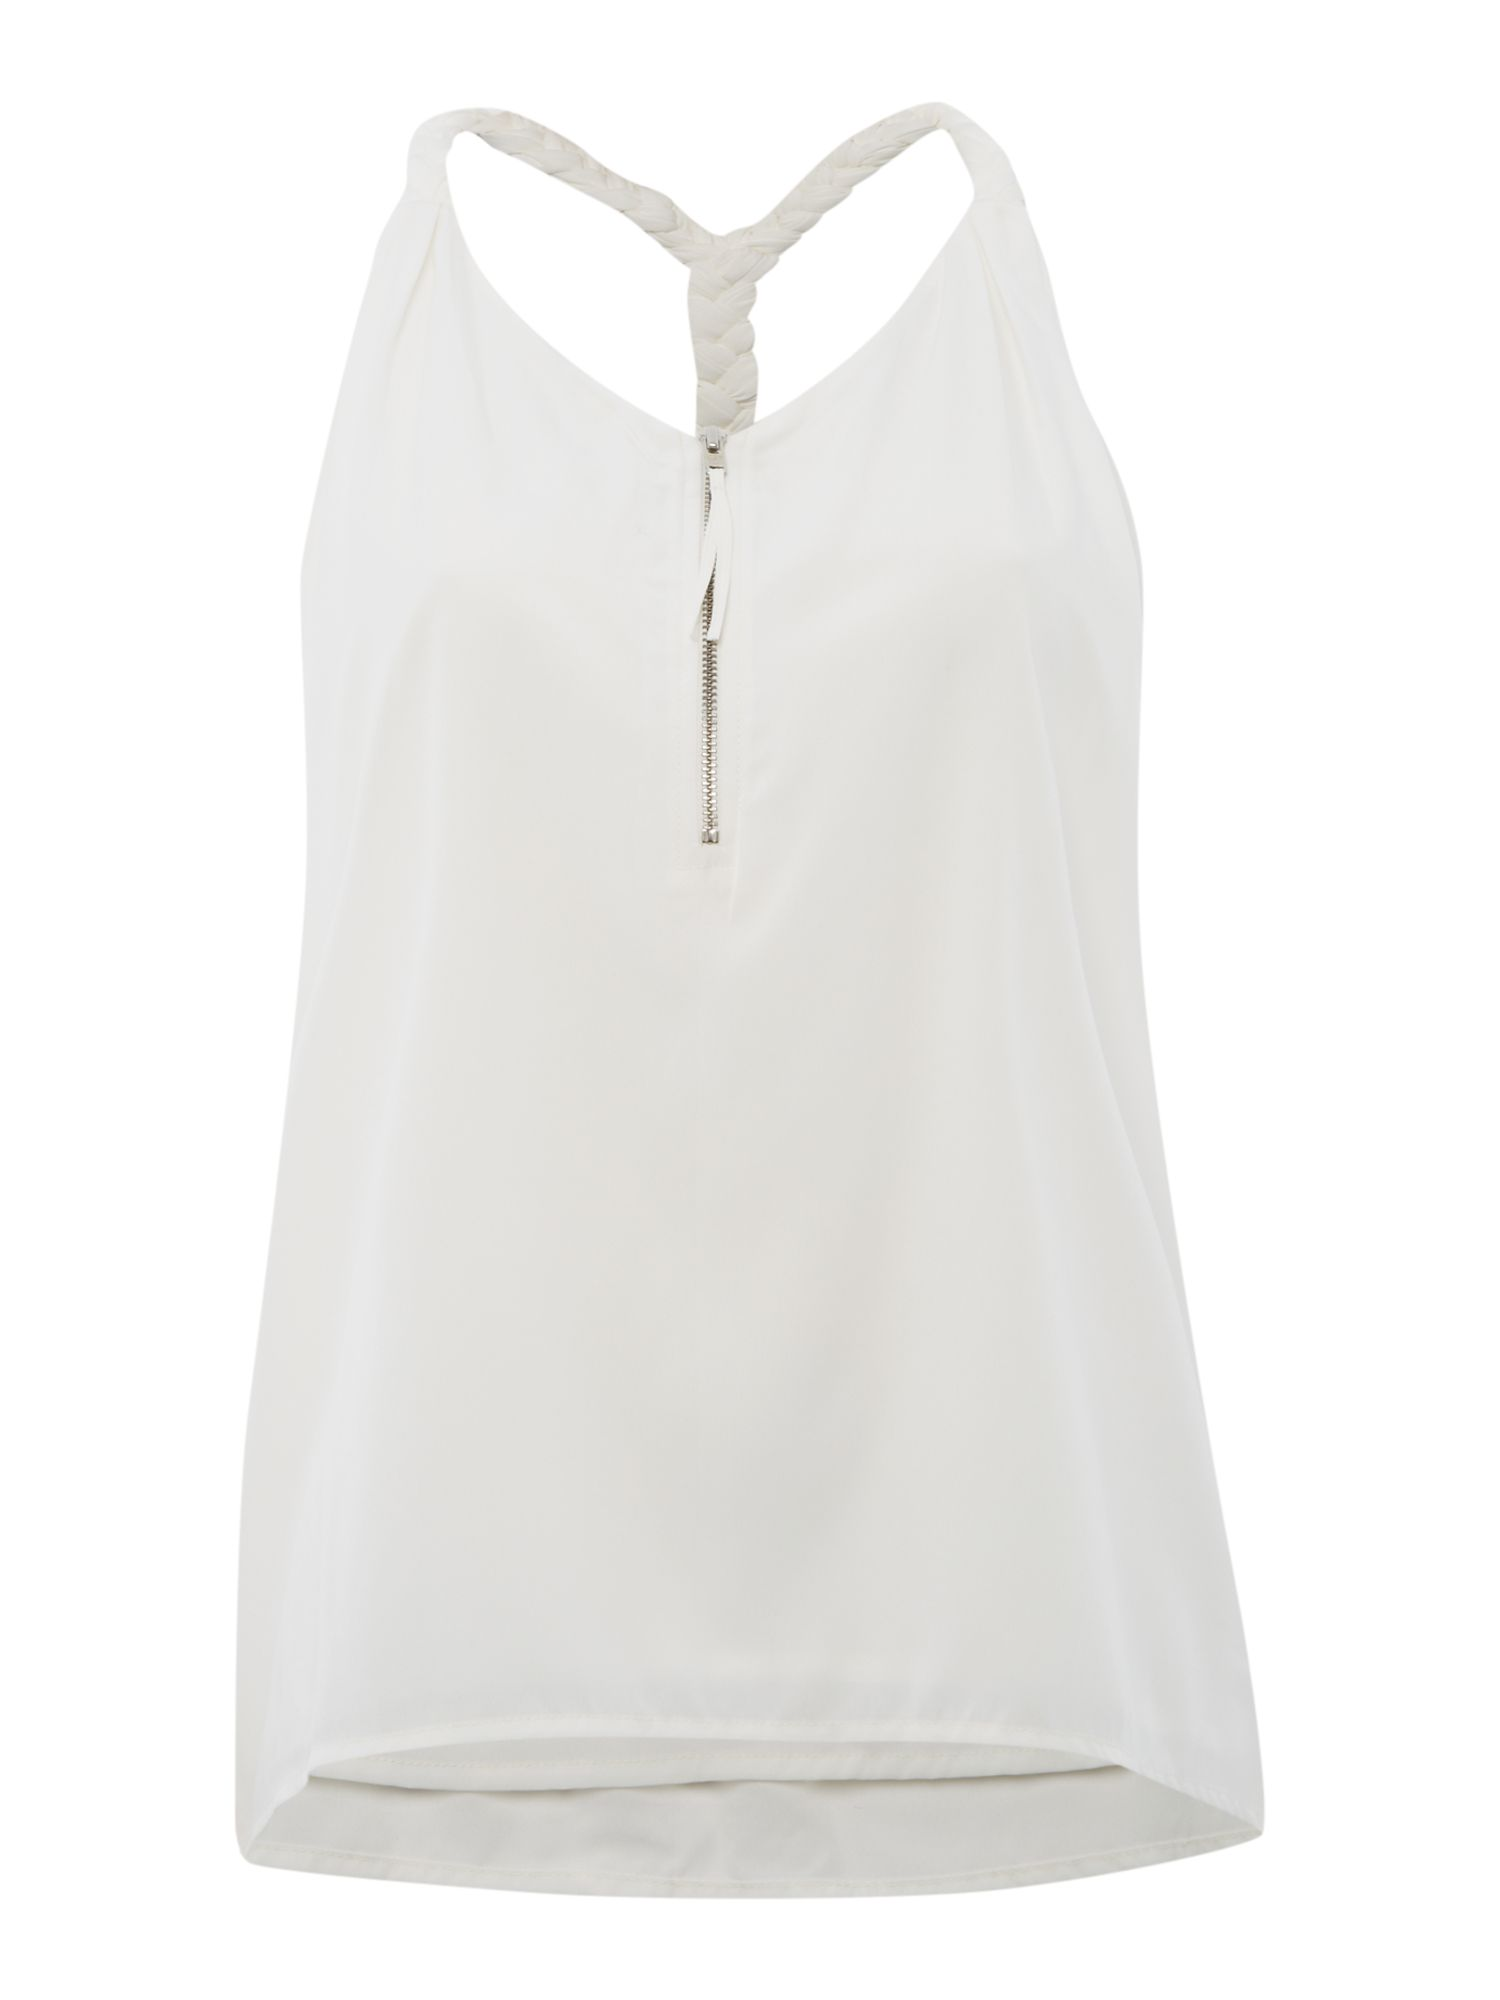 Plait racer back top